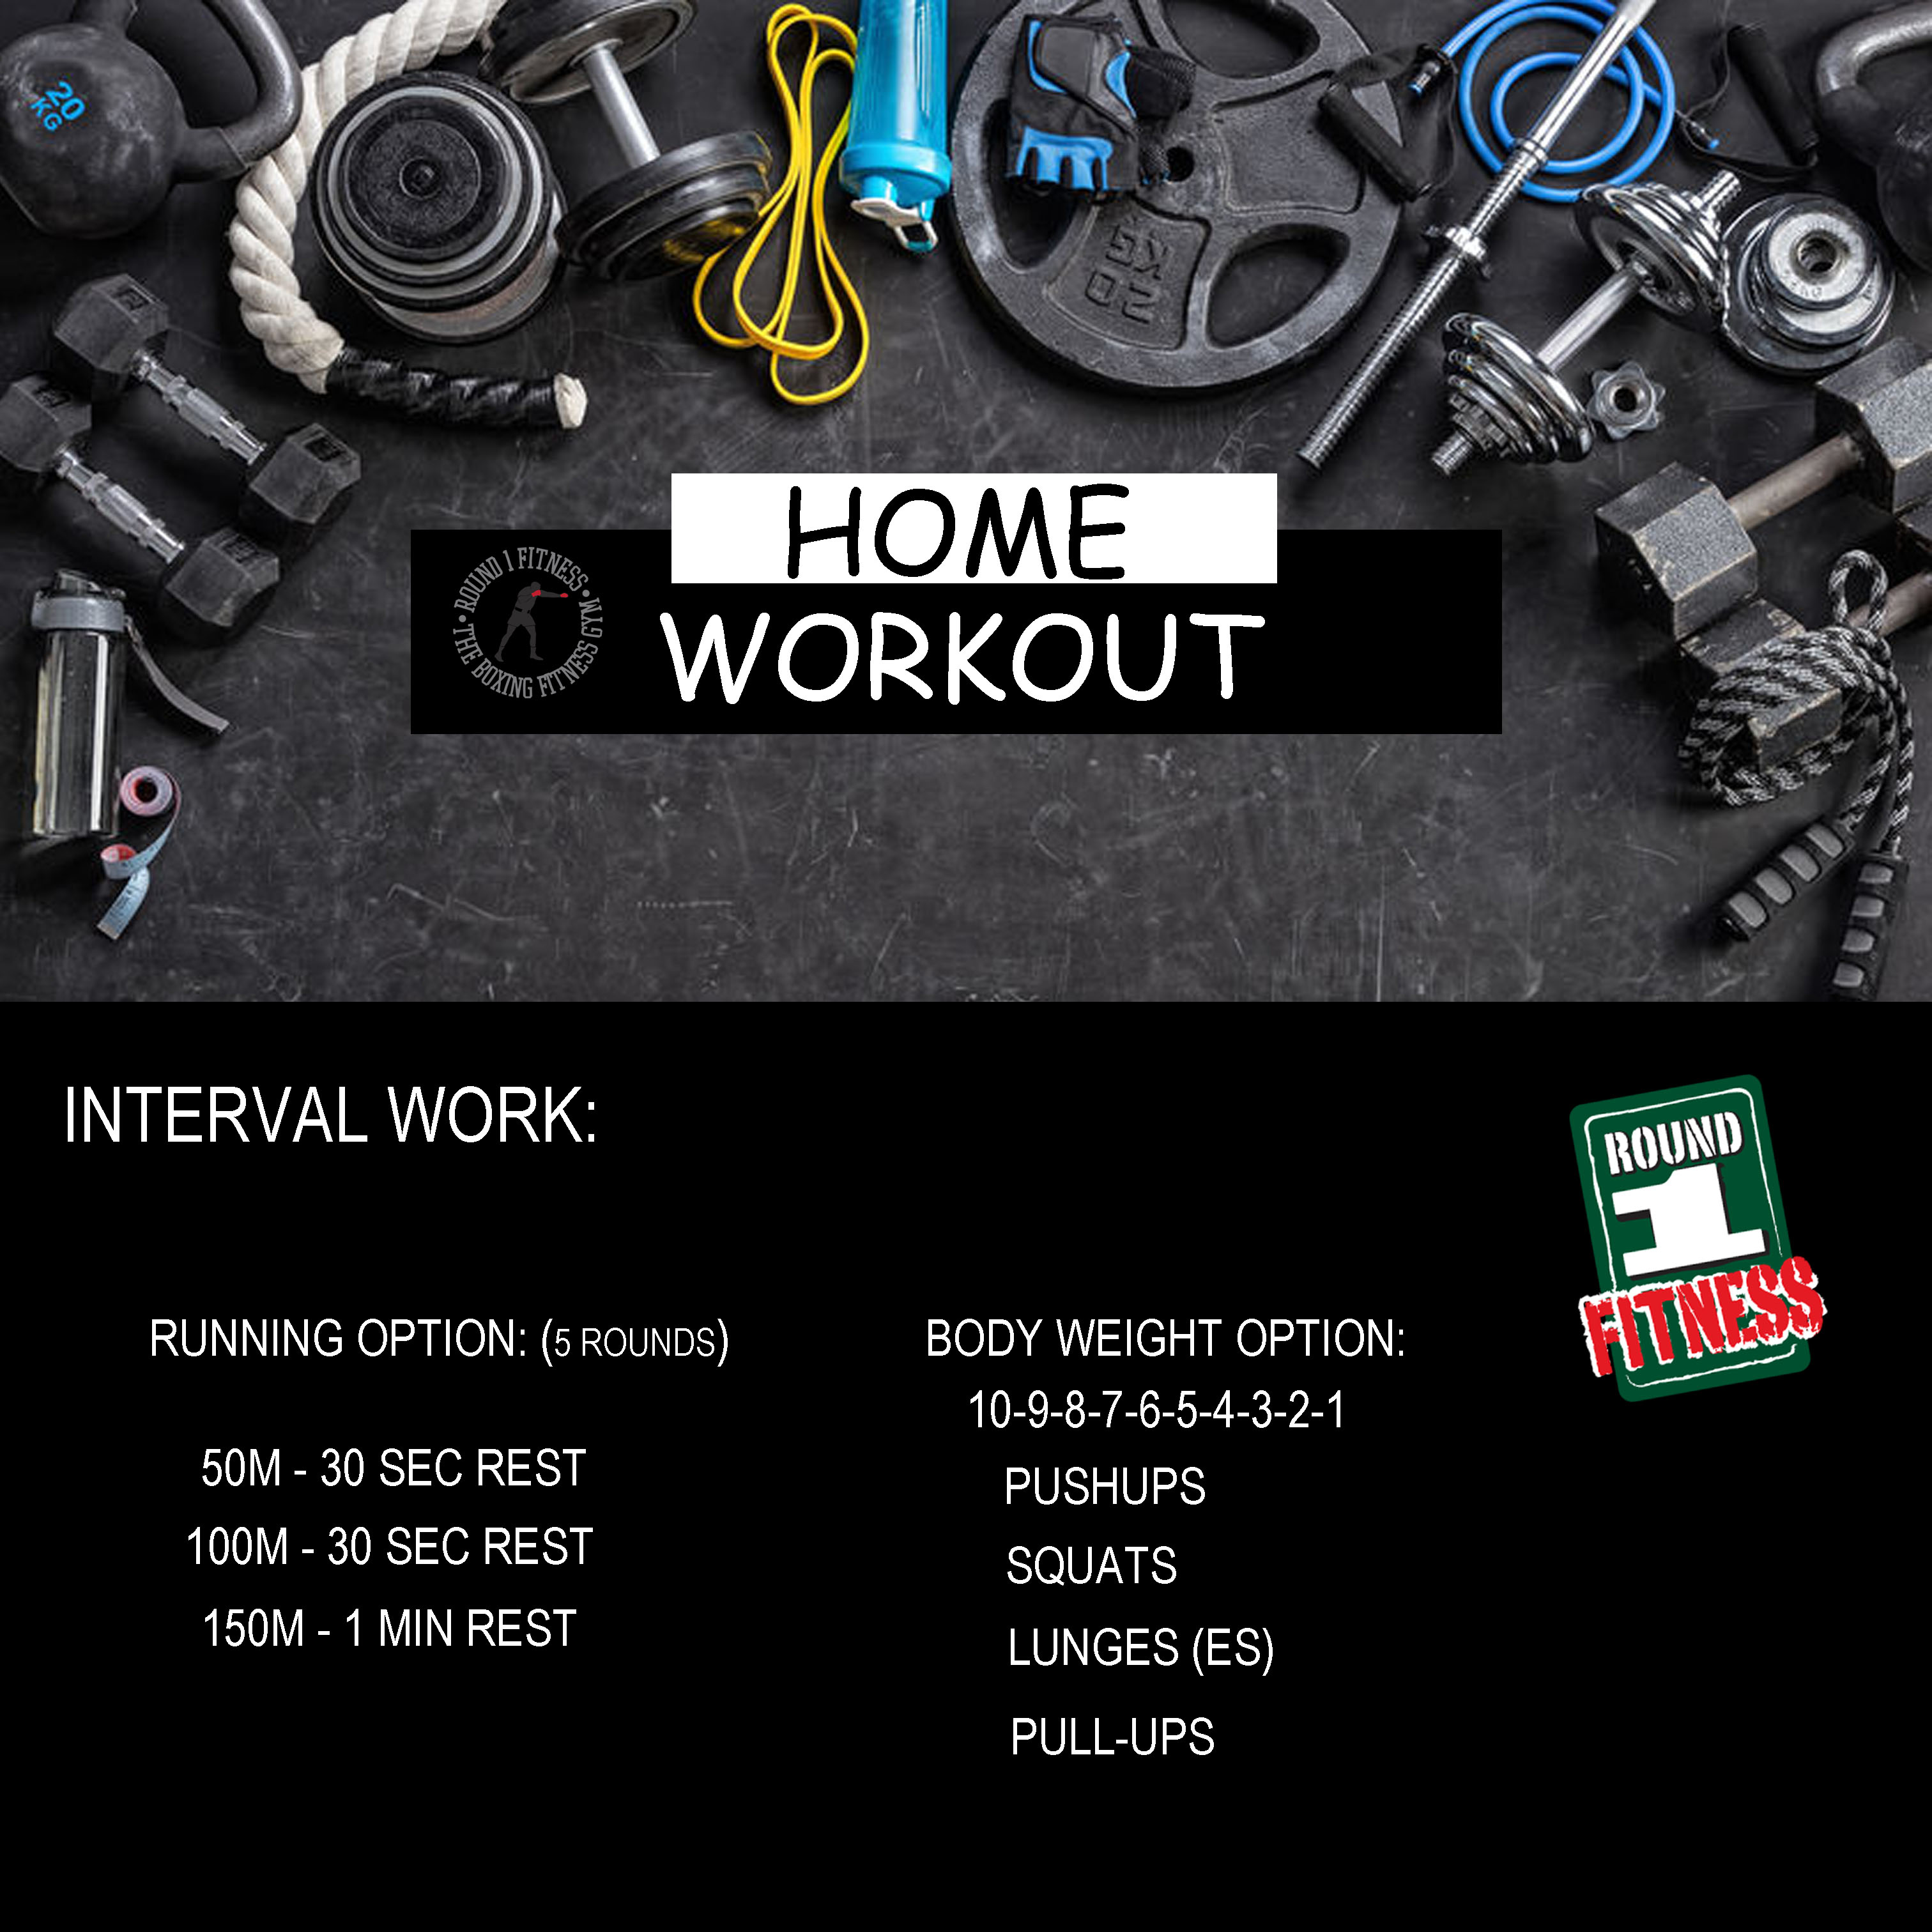 COVID Lockdown#3 – Round 1 @ Home – Workout 5, April 28th 2021